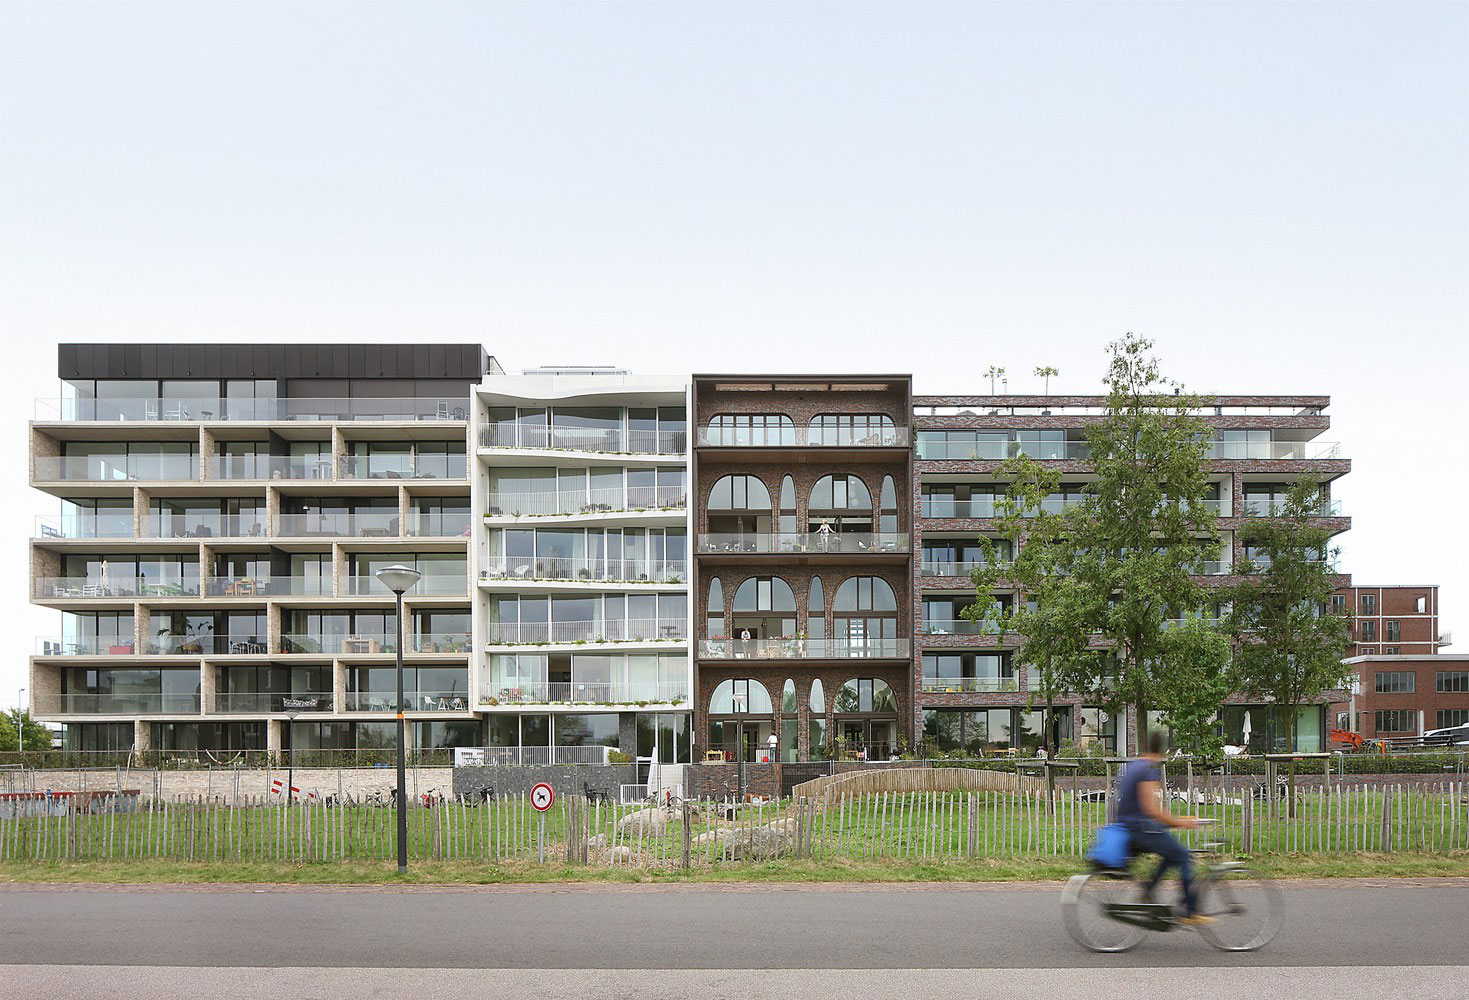 DIY-housing Project Amstelloft in Amsterdam by WE architecten   Yellowtrace